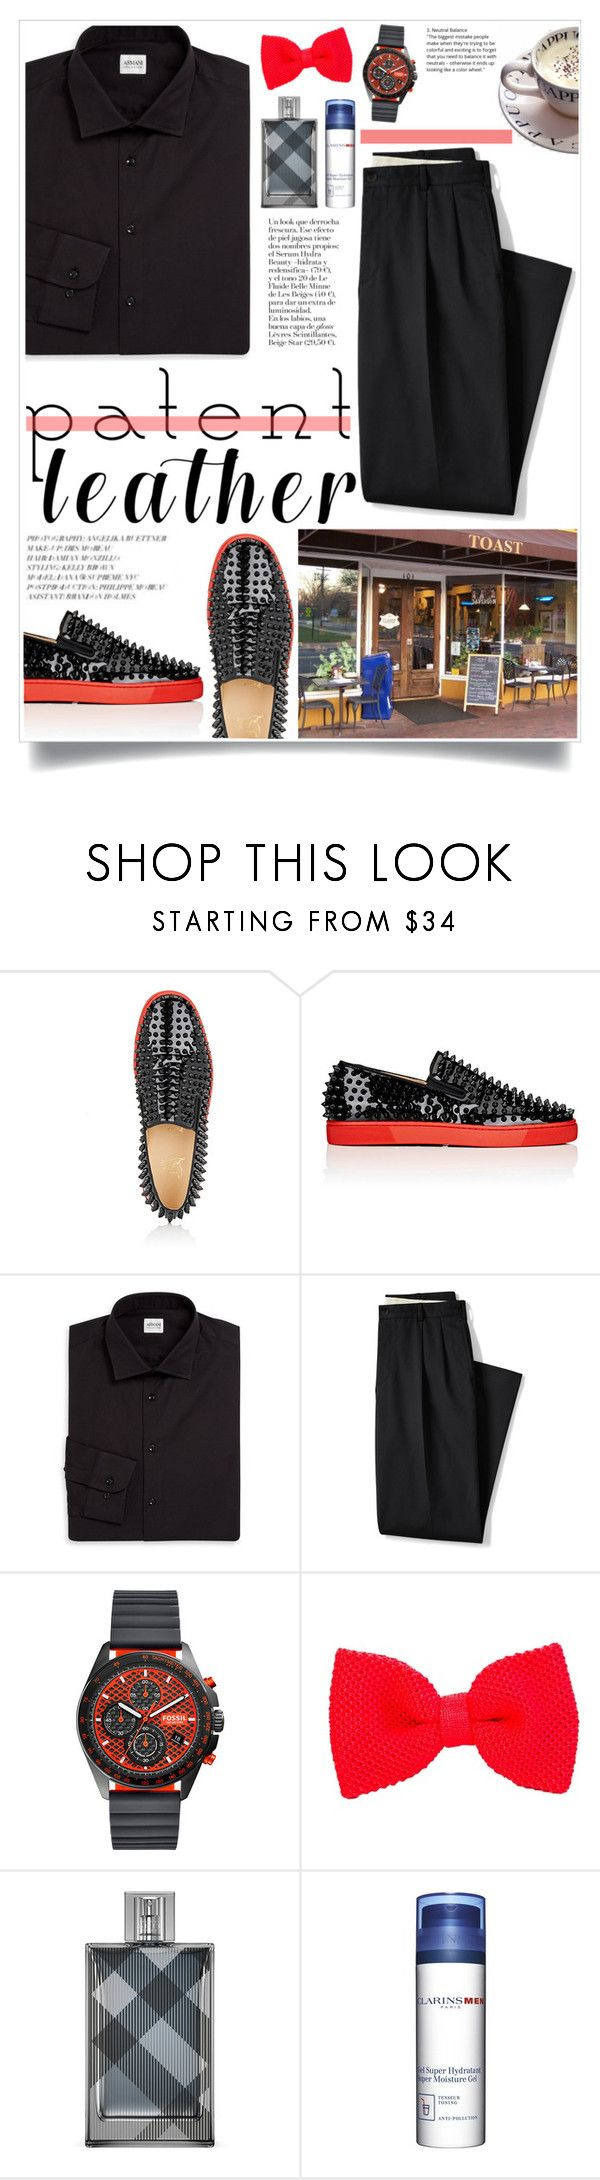 """Mr. Perfect: Choi Siwon"" by iamrendrawati ❤ liked on Polyvore featuring Christian Louboutin, Armani Collezioni, Lands' End, FOSSIL, 40 Colori, Clarins, men's fashion and menswear"